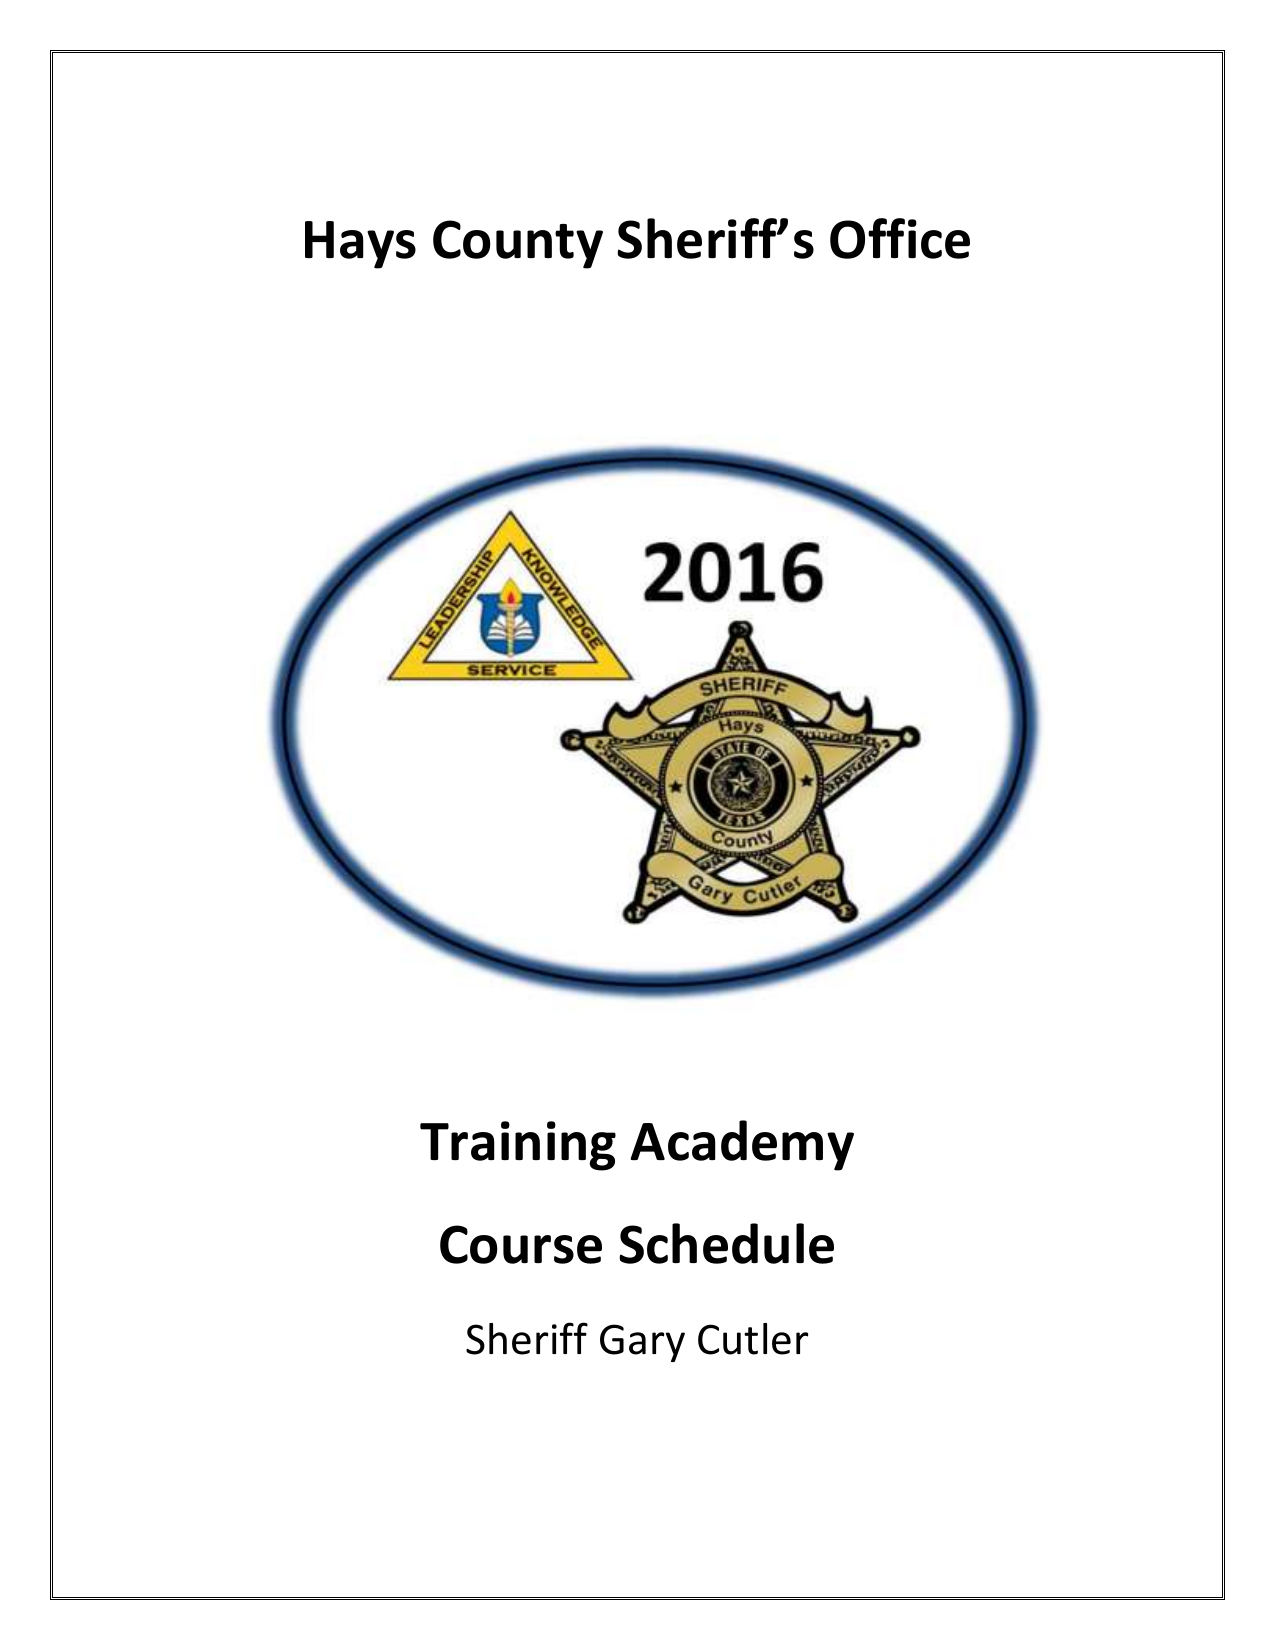 Hays County Sheriff's Office Training Academy Course Schedule